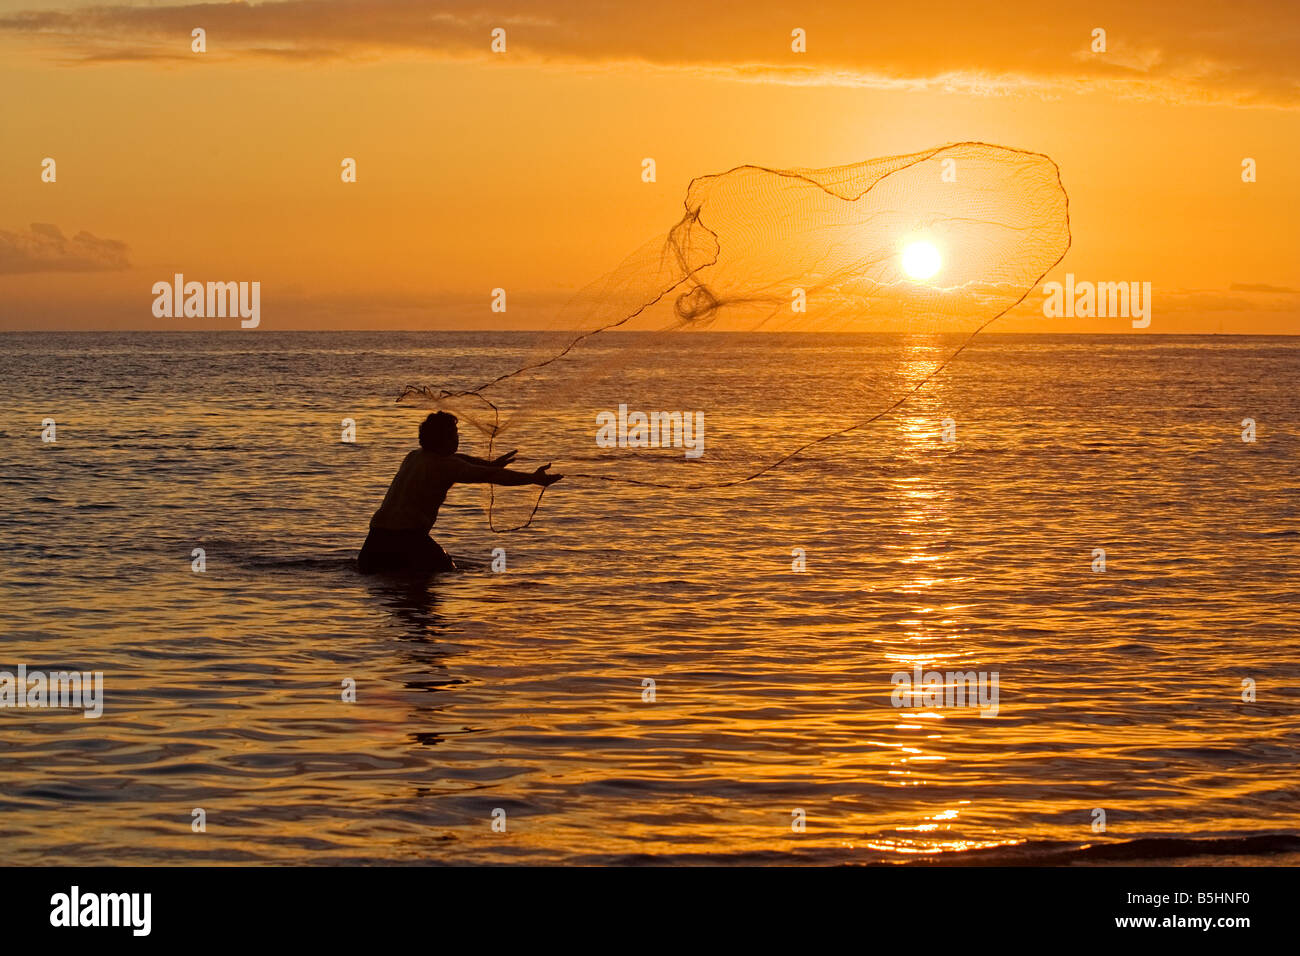 A Hawaiian man throws his net at sunset at Olowalu, Maui, Hawaii - Stock Image